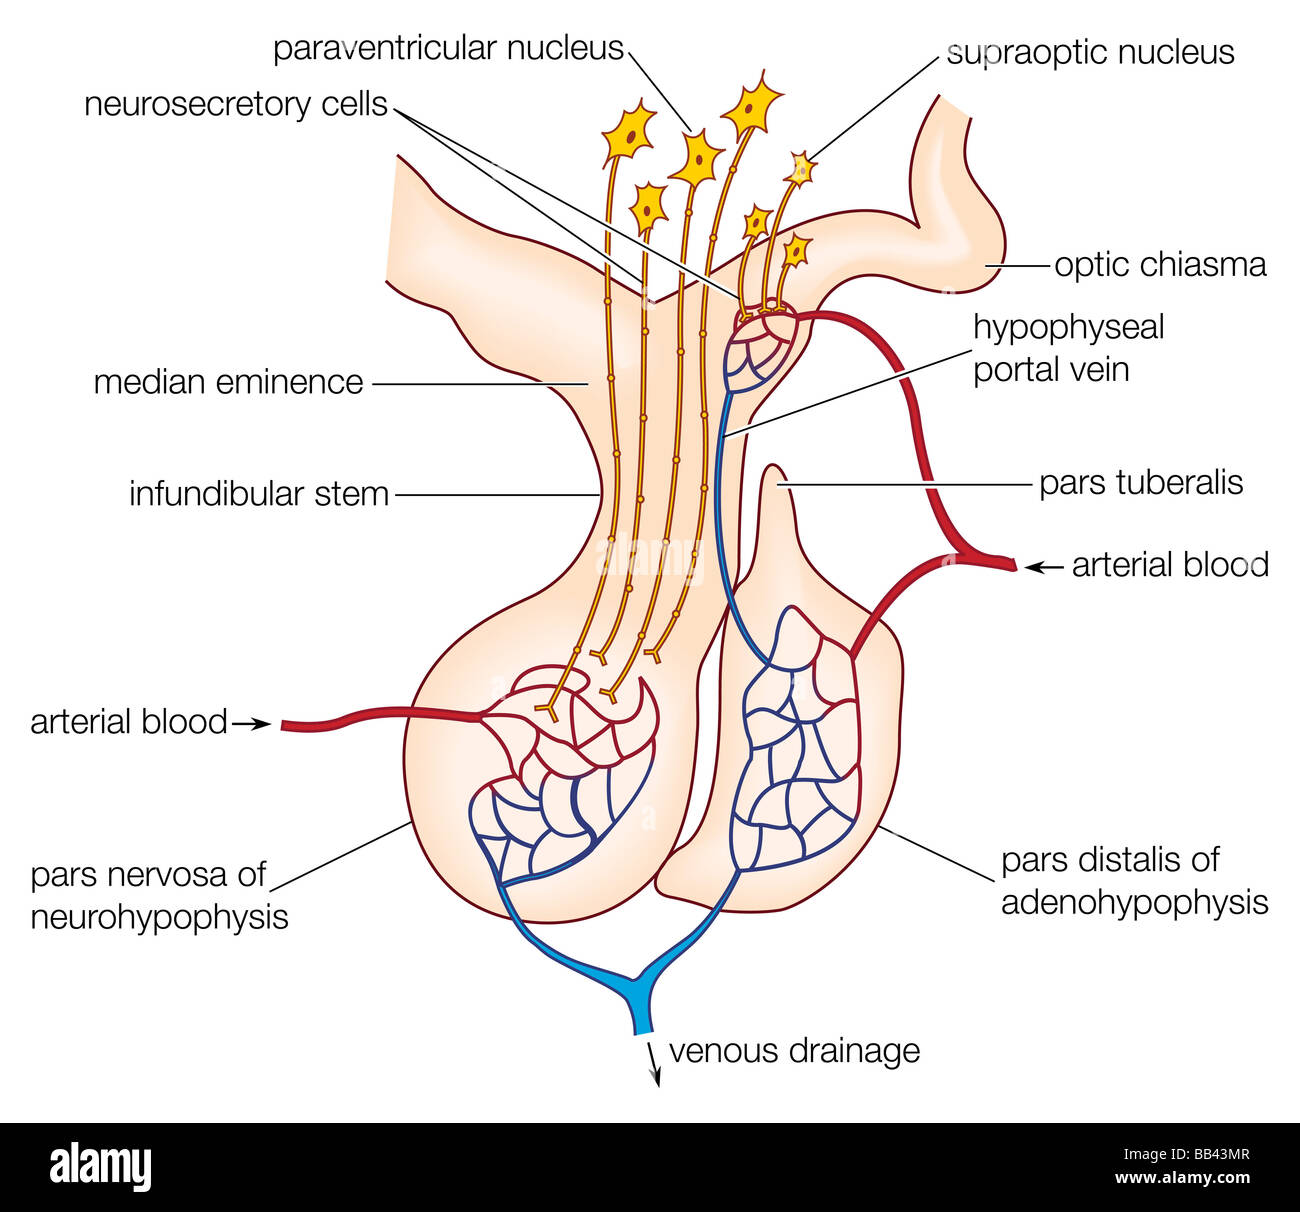 hight resolution of the mammalian pituitary gland showing the anterior lobe adenohypophysis and posterior lobe